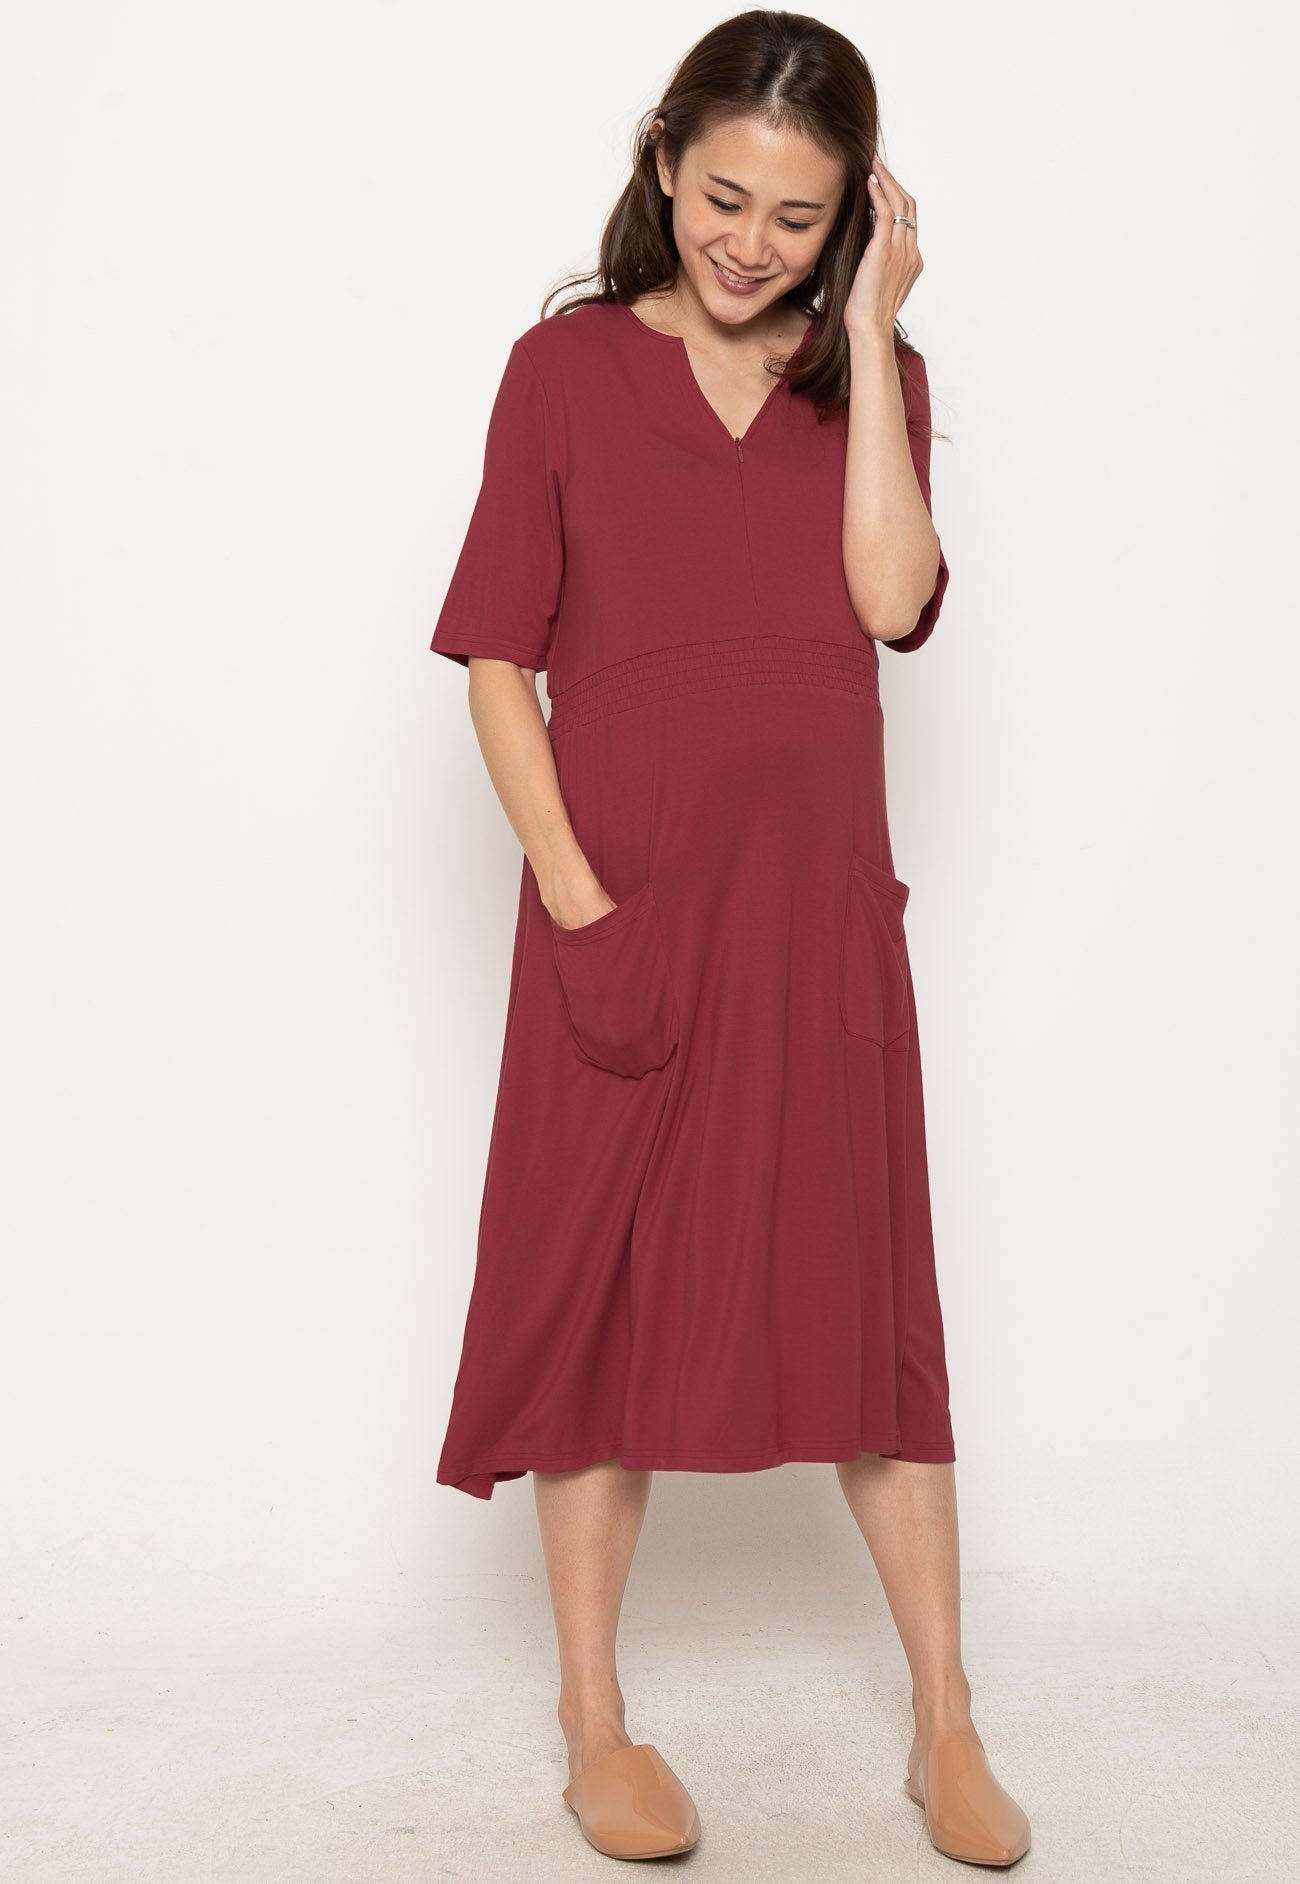 Clio Zipped Down Nursing Dress in Red  by JumpEatCry - Maternity and nursing wear